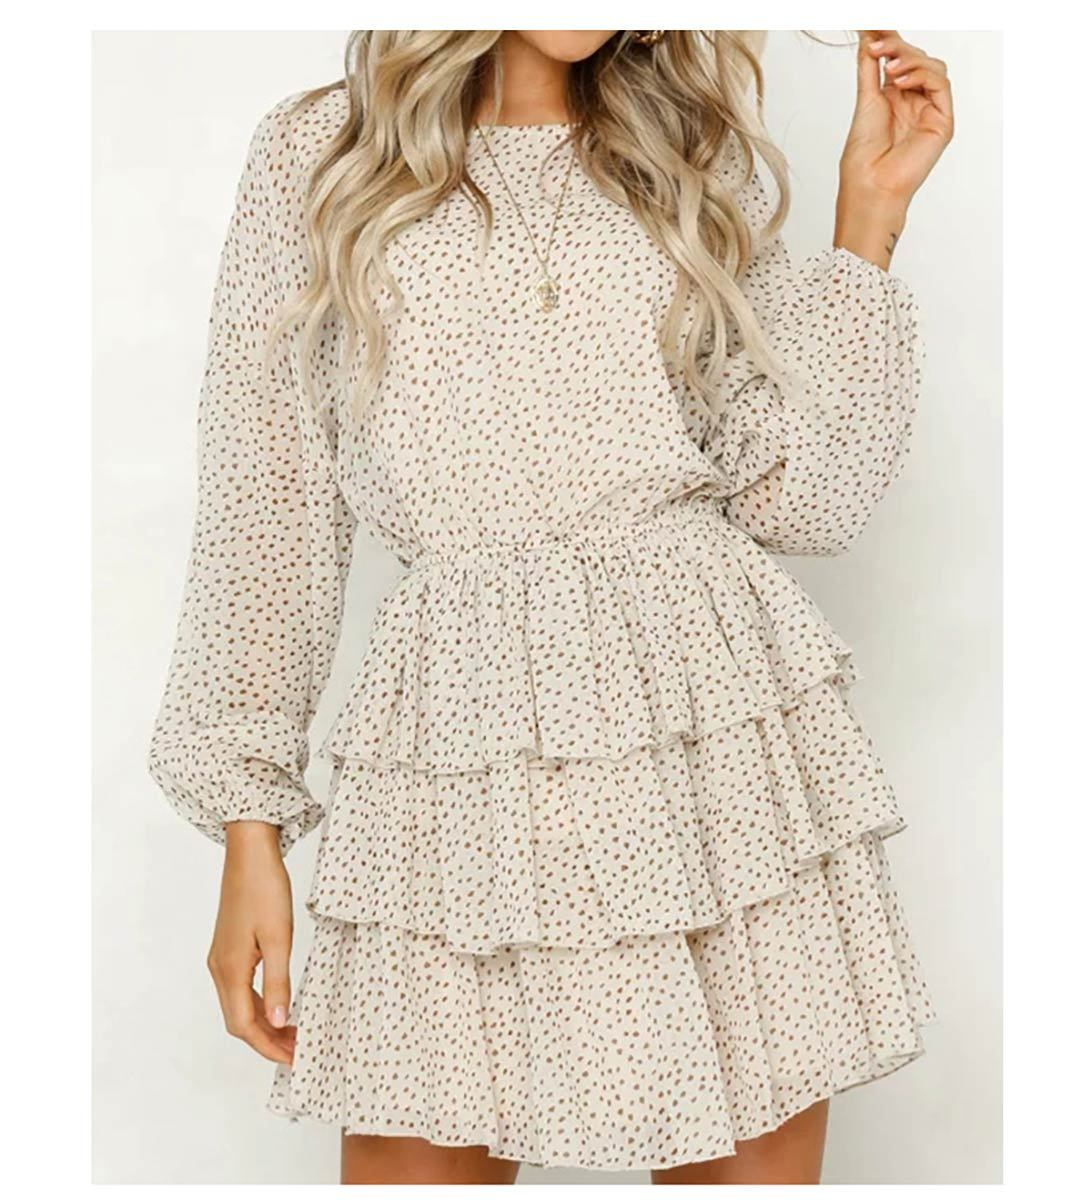 OTN Puff Sleeve Gathered Waist Ruffle Mini Dress in Cream Spot-Lookbook Boutique